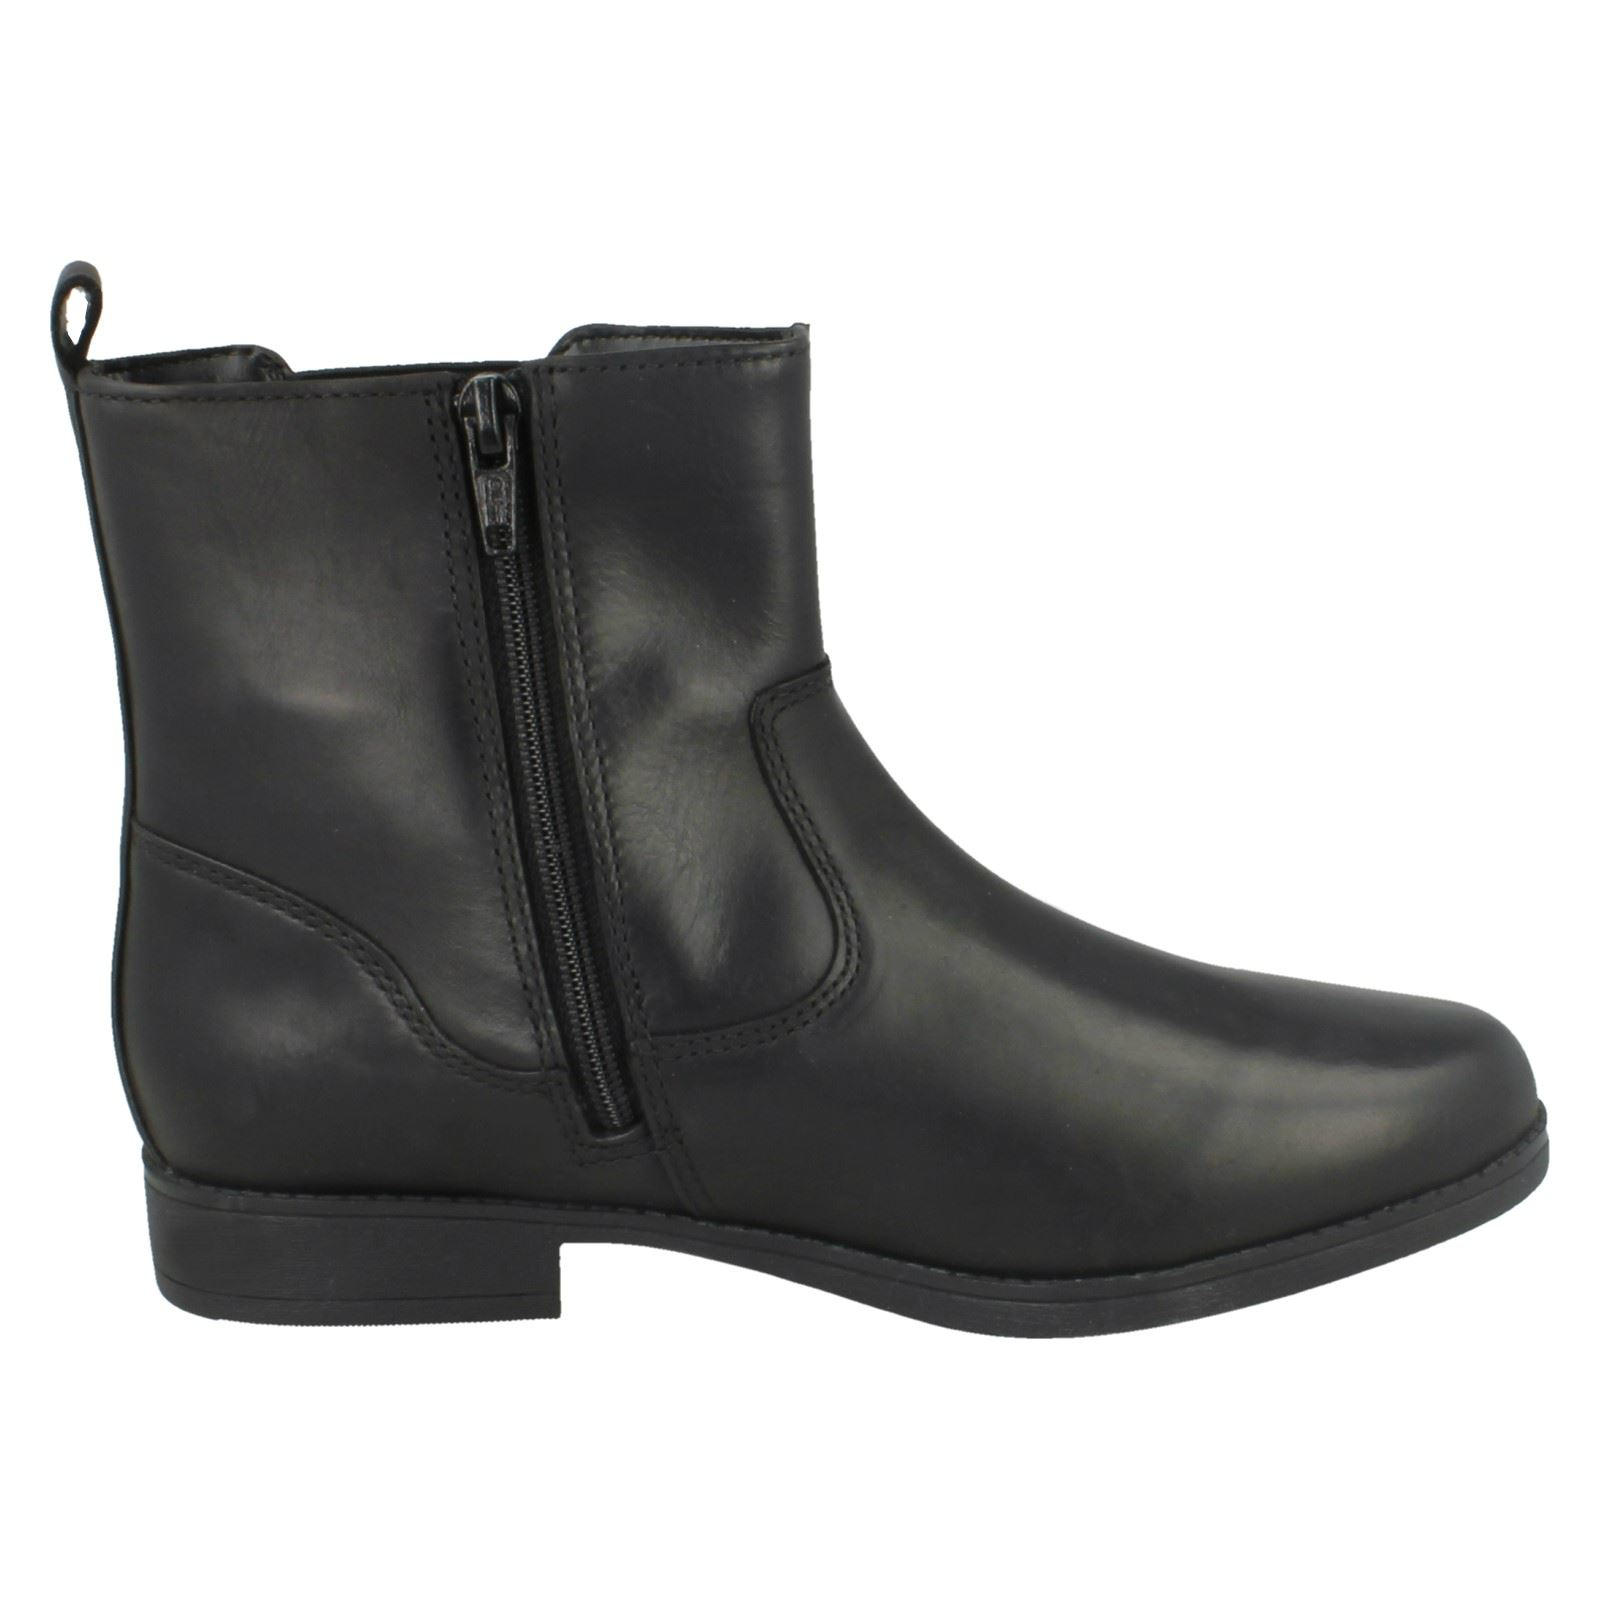 Girls Bootleg By Clarks Ankle Boots /'Sami So GTX/'